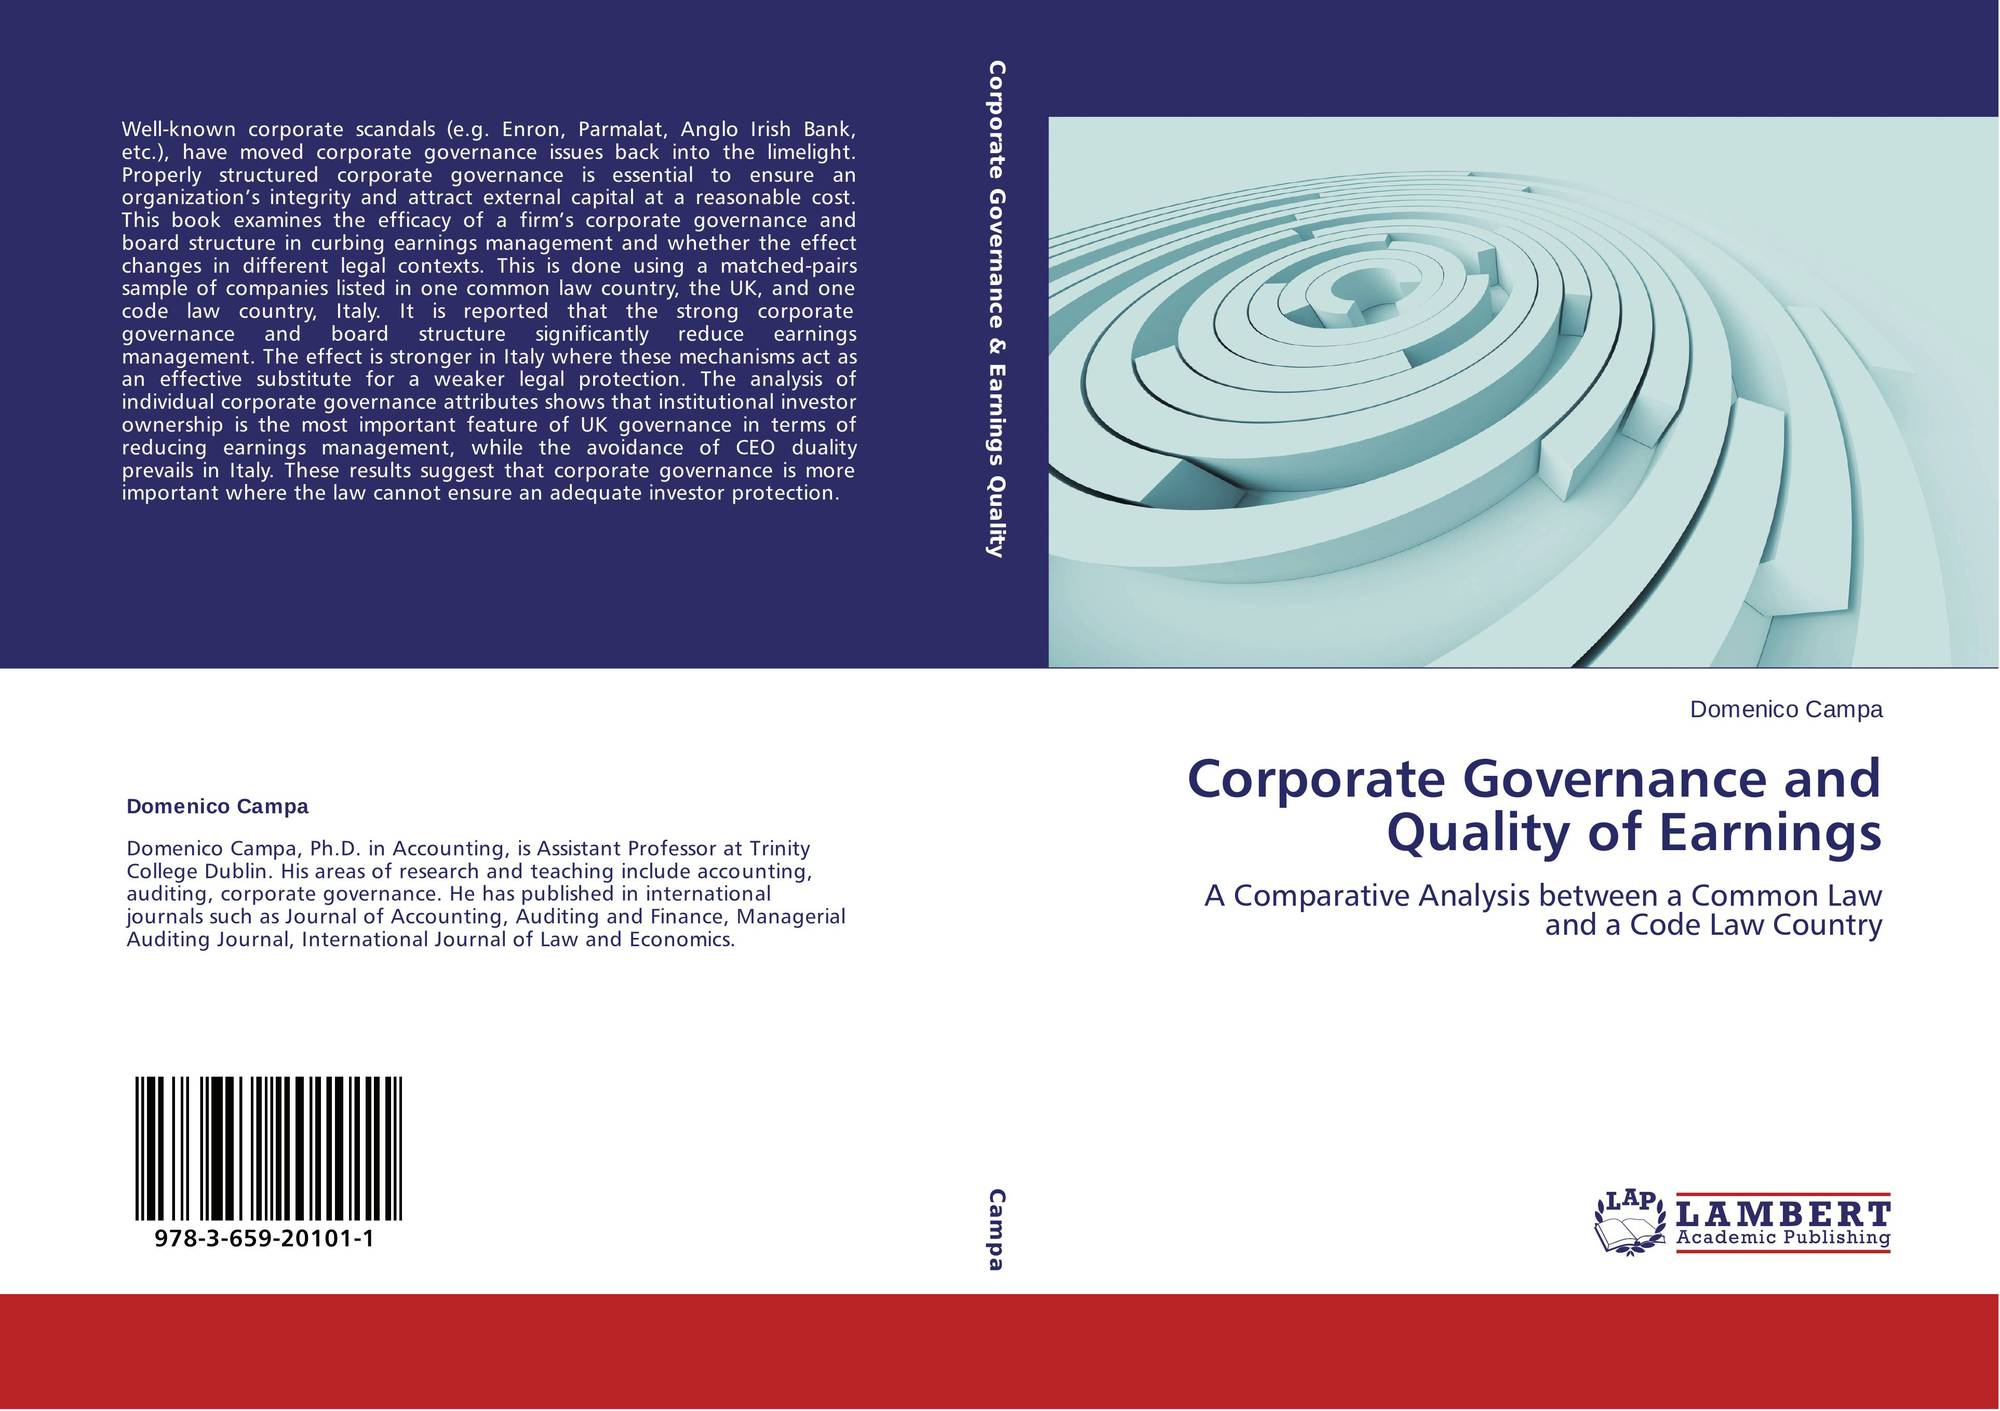 quality of earnings and accounting issu